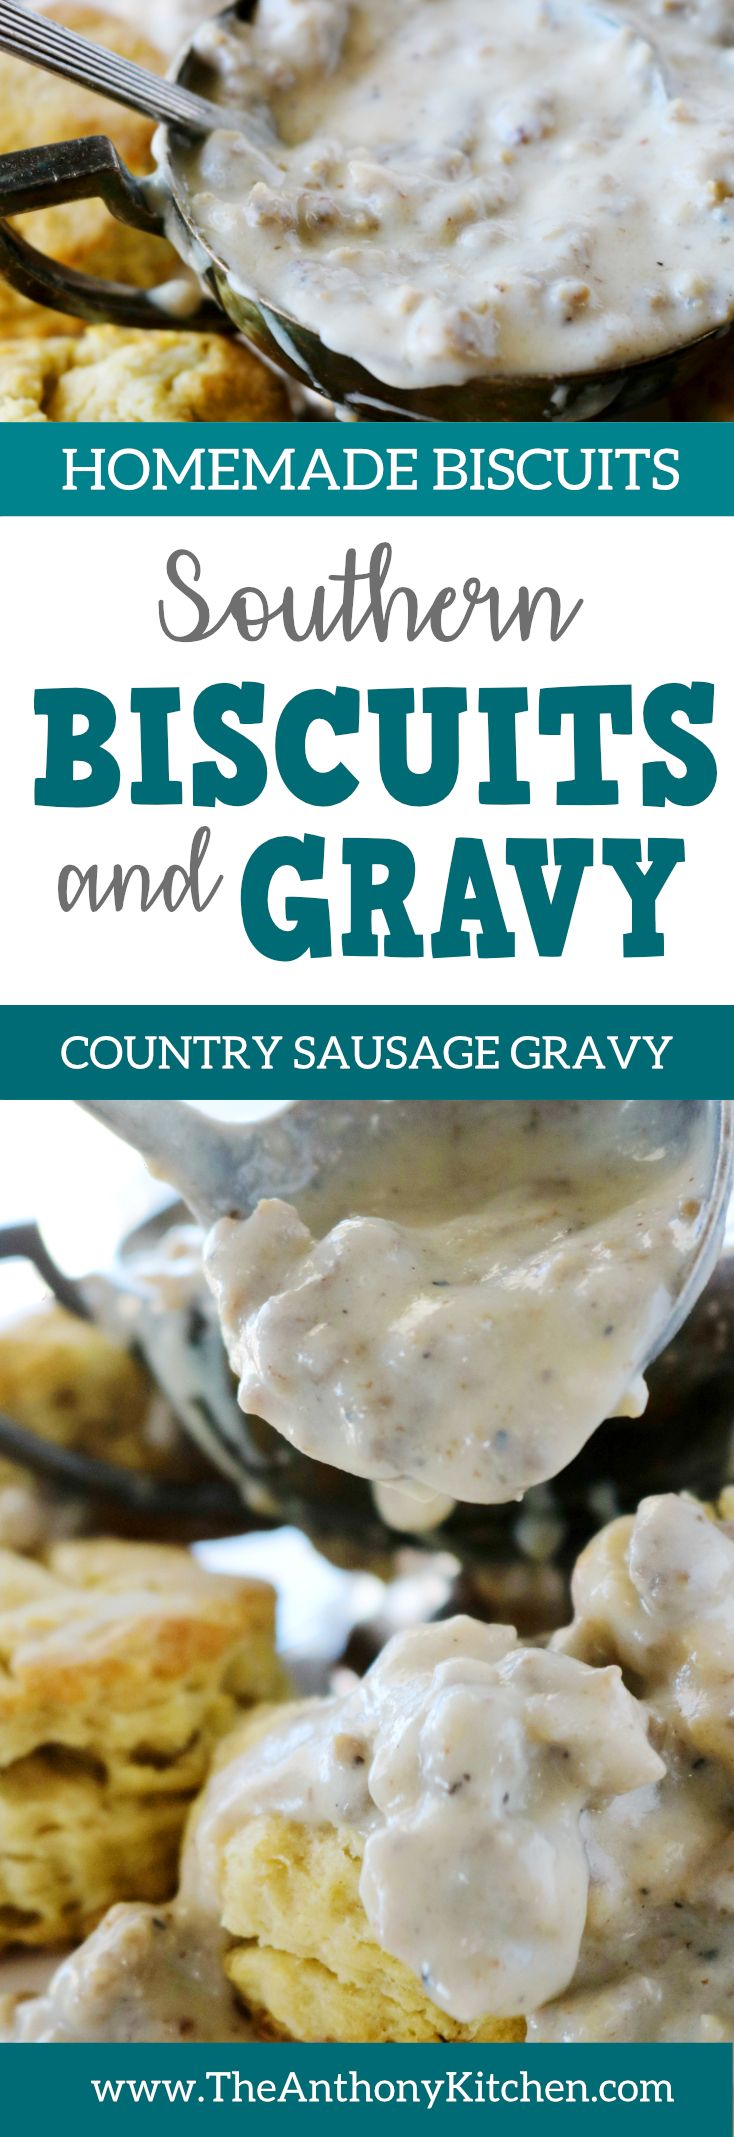 Homemade Biscuits and Gravy Recipe | An easy recipe for perfect homemade biscuits topped with Southern sausage gravy | #Homemadebiscuits #sausagebiscuitsandgravy #bestbiscuitsandgravy #sausagegravyrecipe